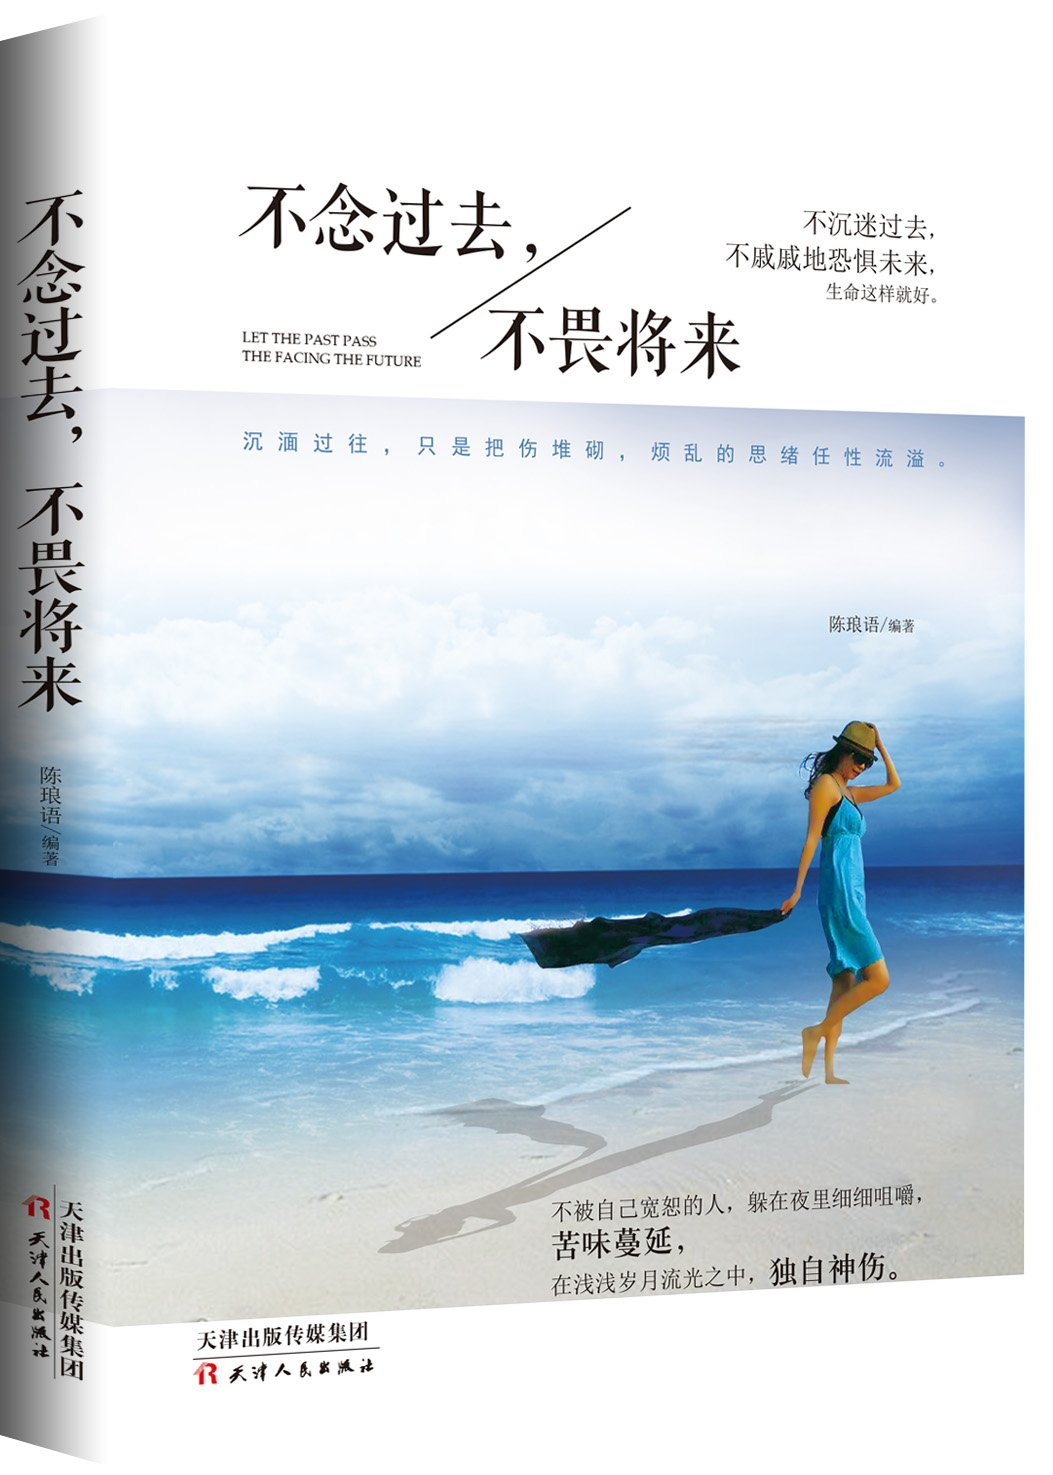 Forget The Past. Look To The Future. Chen Ci, Works (author)